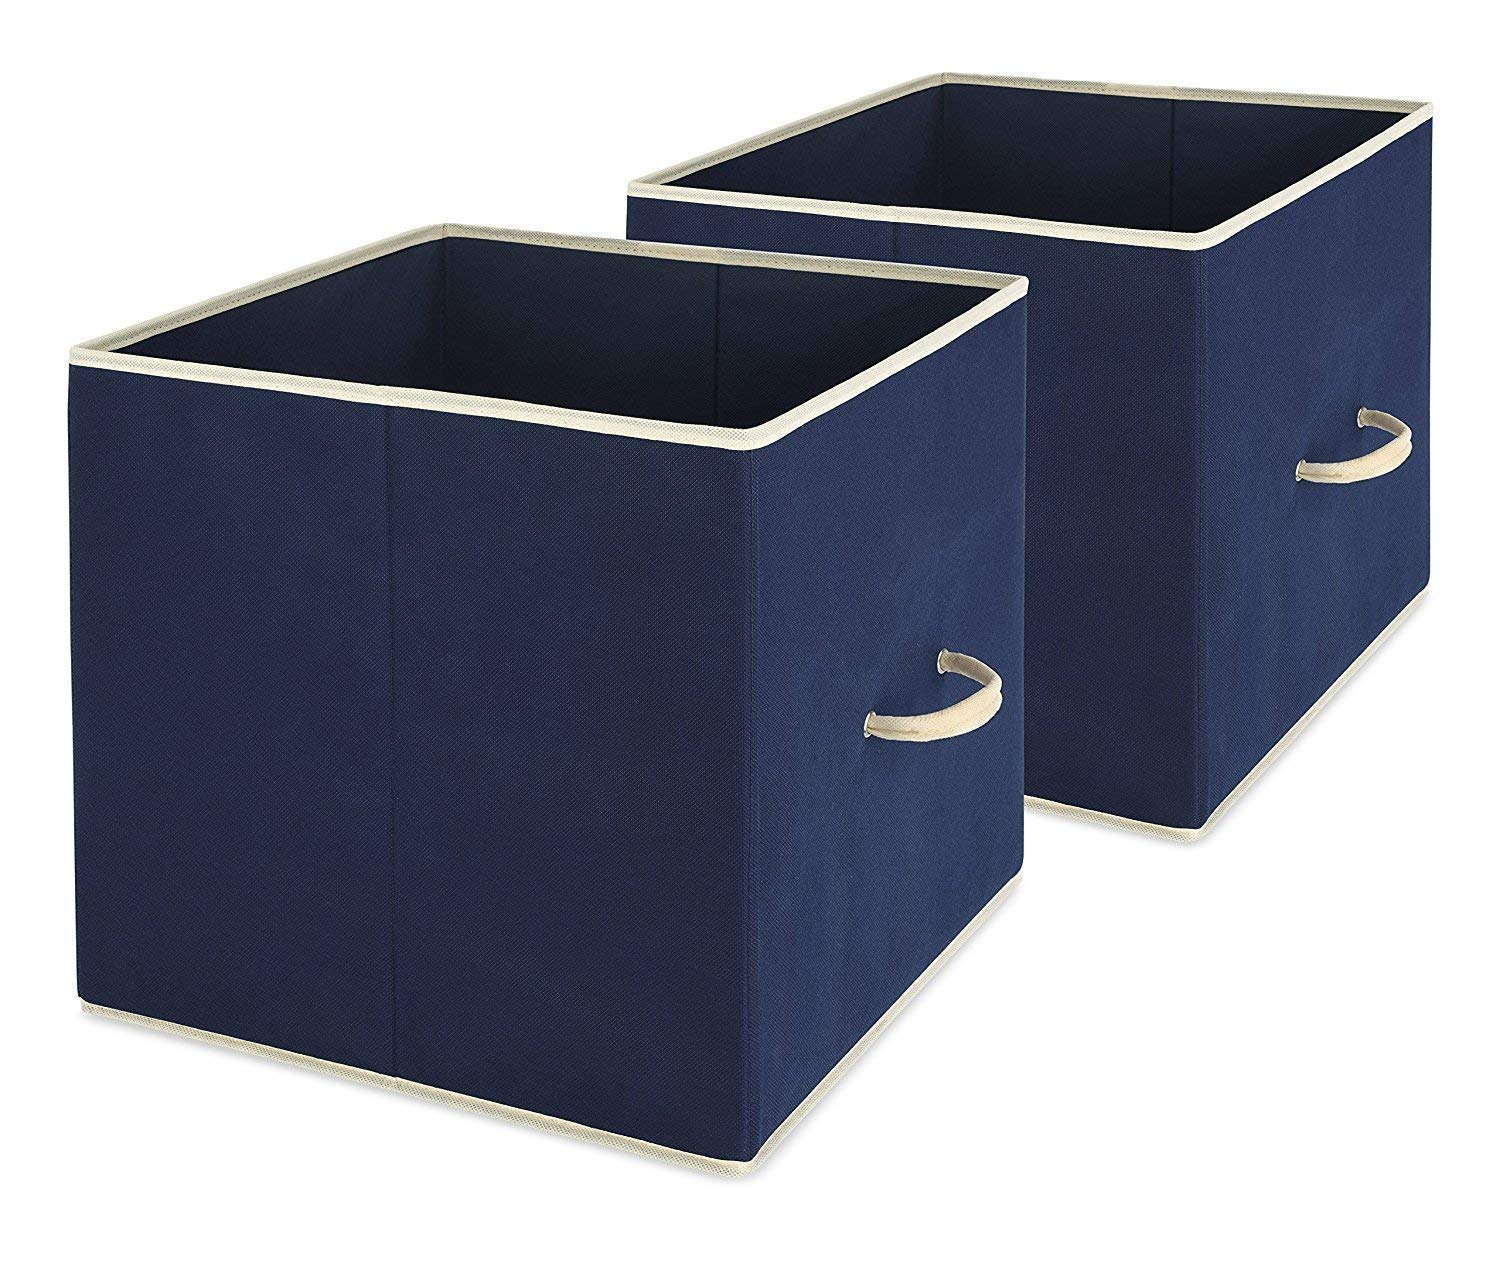 Collapsible Storage Bin, Set of 2 - Foldable Cloth Storage Cube – Perfect Organizer for Playrooms, Living Room or Bedroom – Space Saving Design – Durable – Color Navy by Whitmor WH-6725-909-2